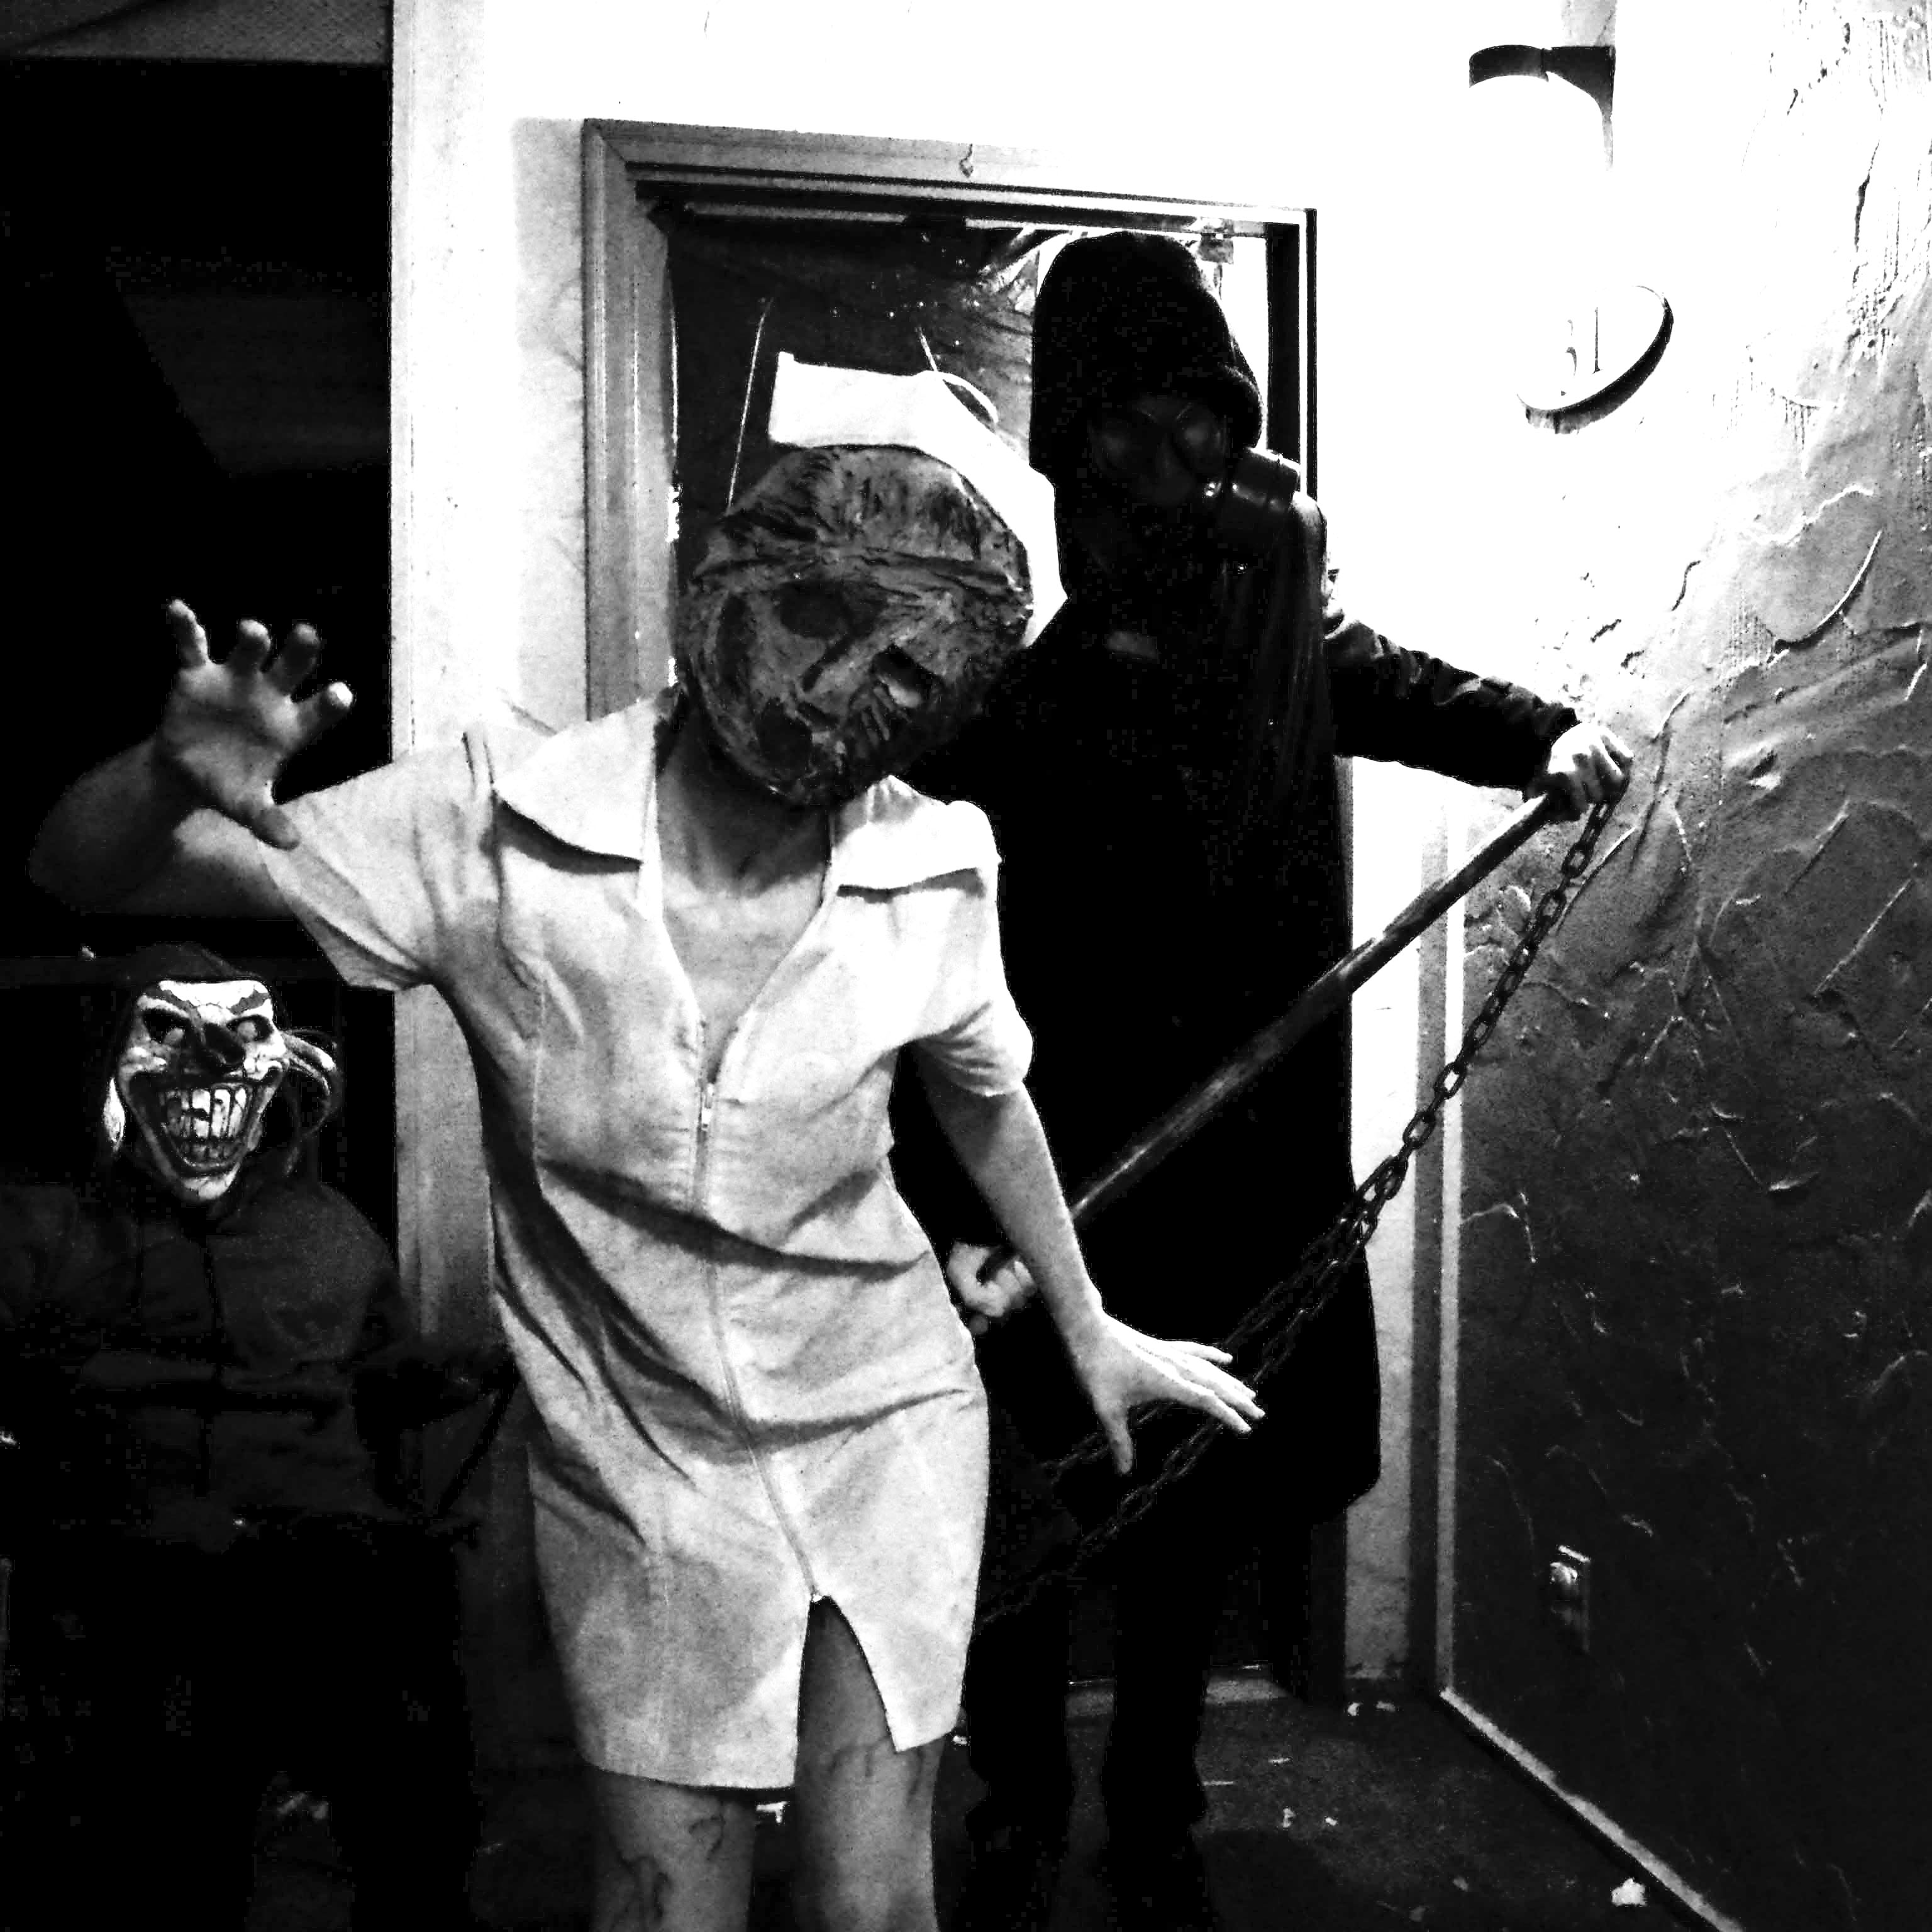 This is a Silent Hill nurse I made for Halloween a few years ago. It